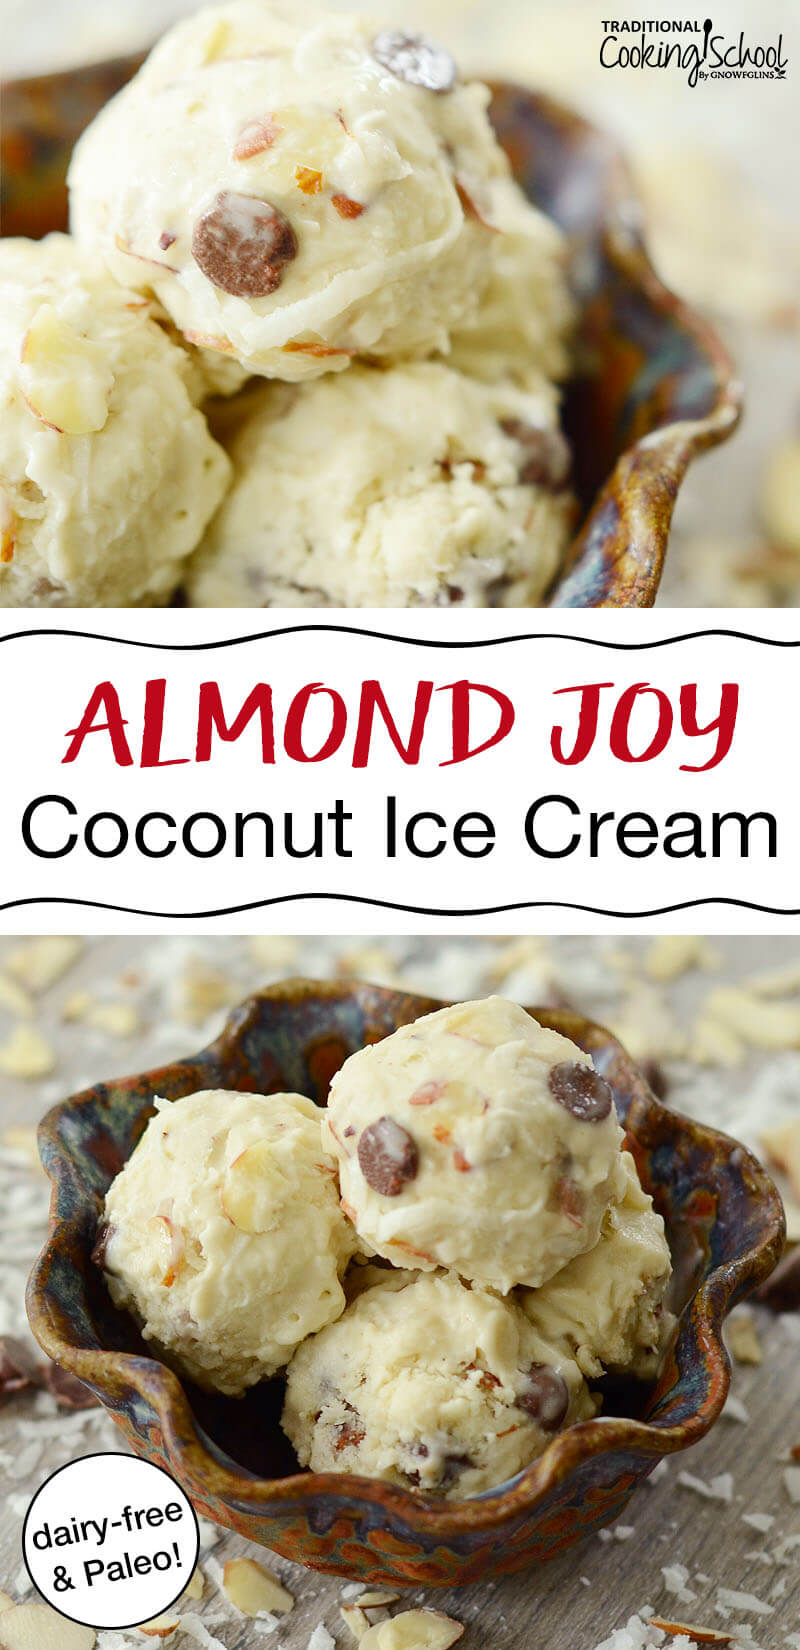 "photo collage of homemade ice cream with vanilla base and sliced almonds, chocolate chips, and toasted coconut with text overlay: ""Almond Joy Coconut Ice Cream (dairy-free & Paleo!)"""